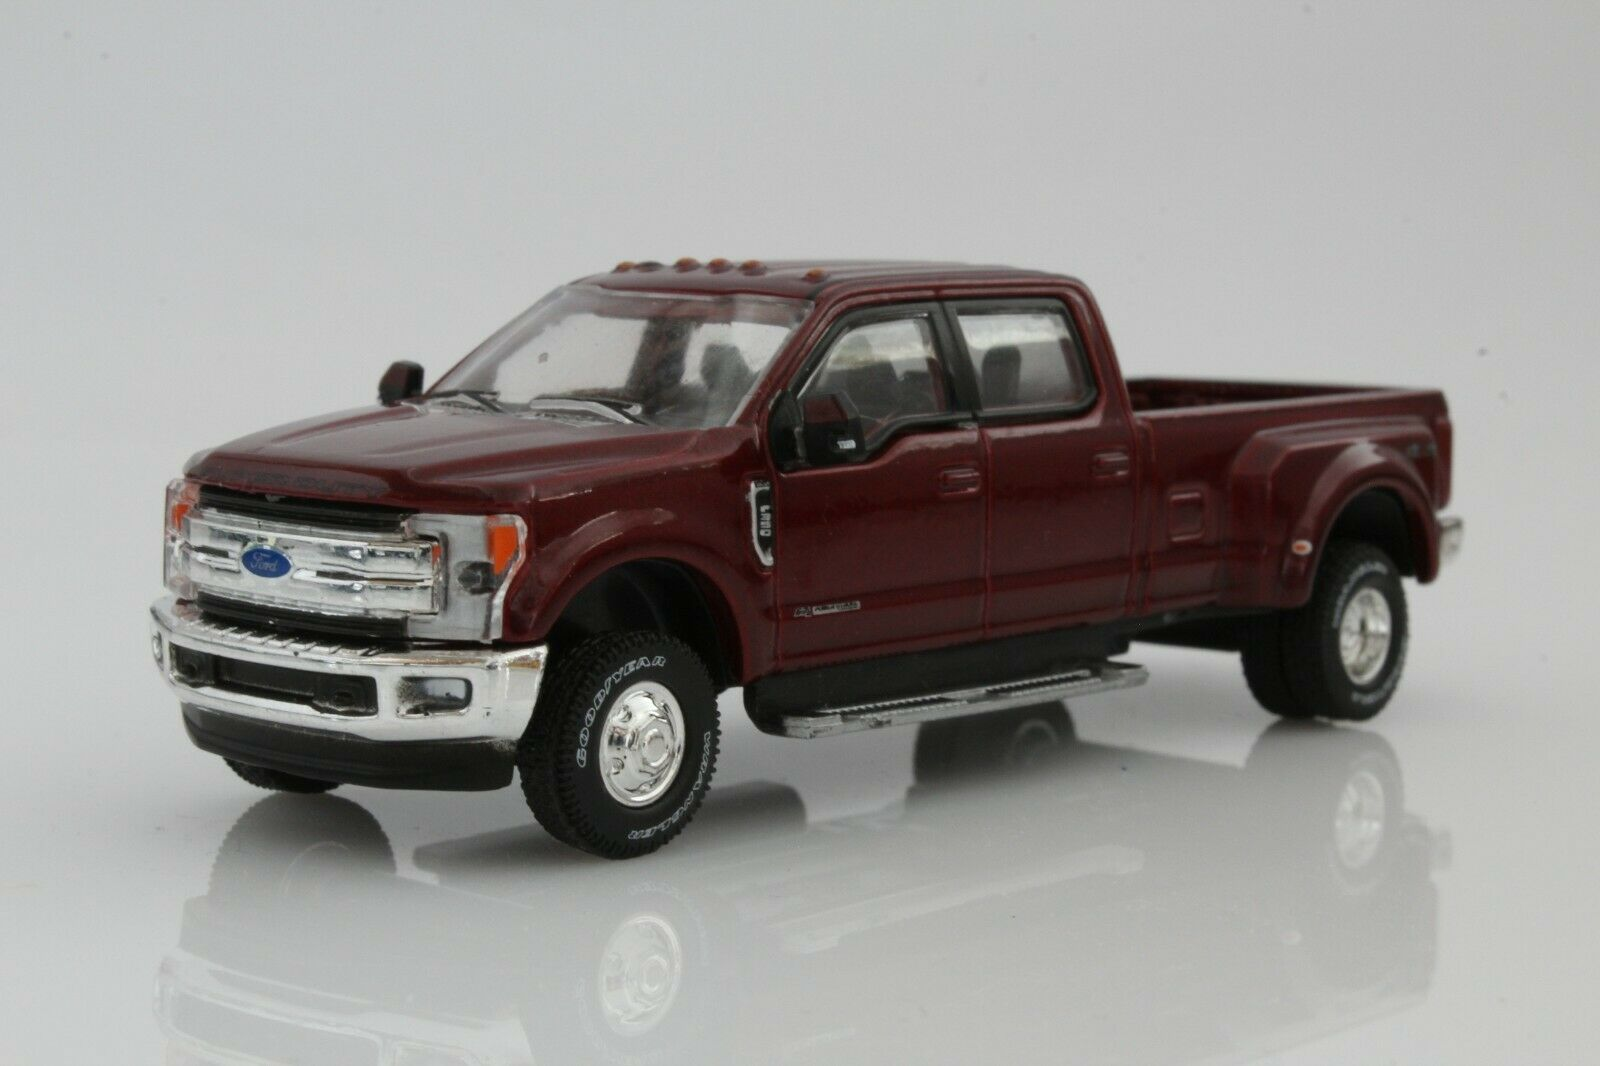 2019 Ford F-350 DRW Dually Lariat Pickup Truck 1:64 Scale Diecast Model Ruby Red